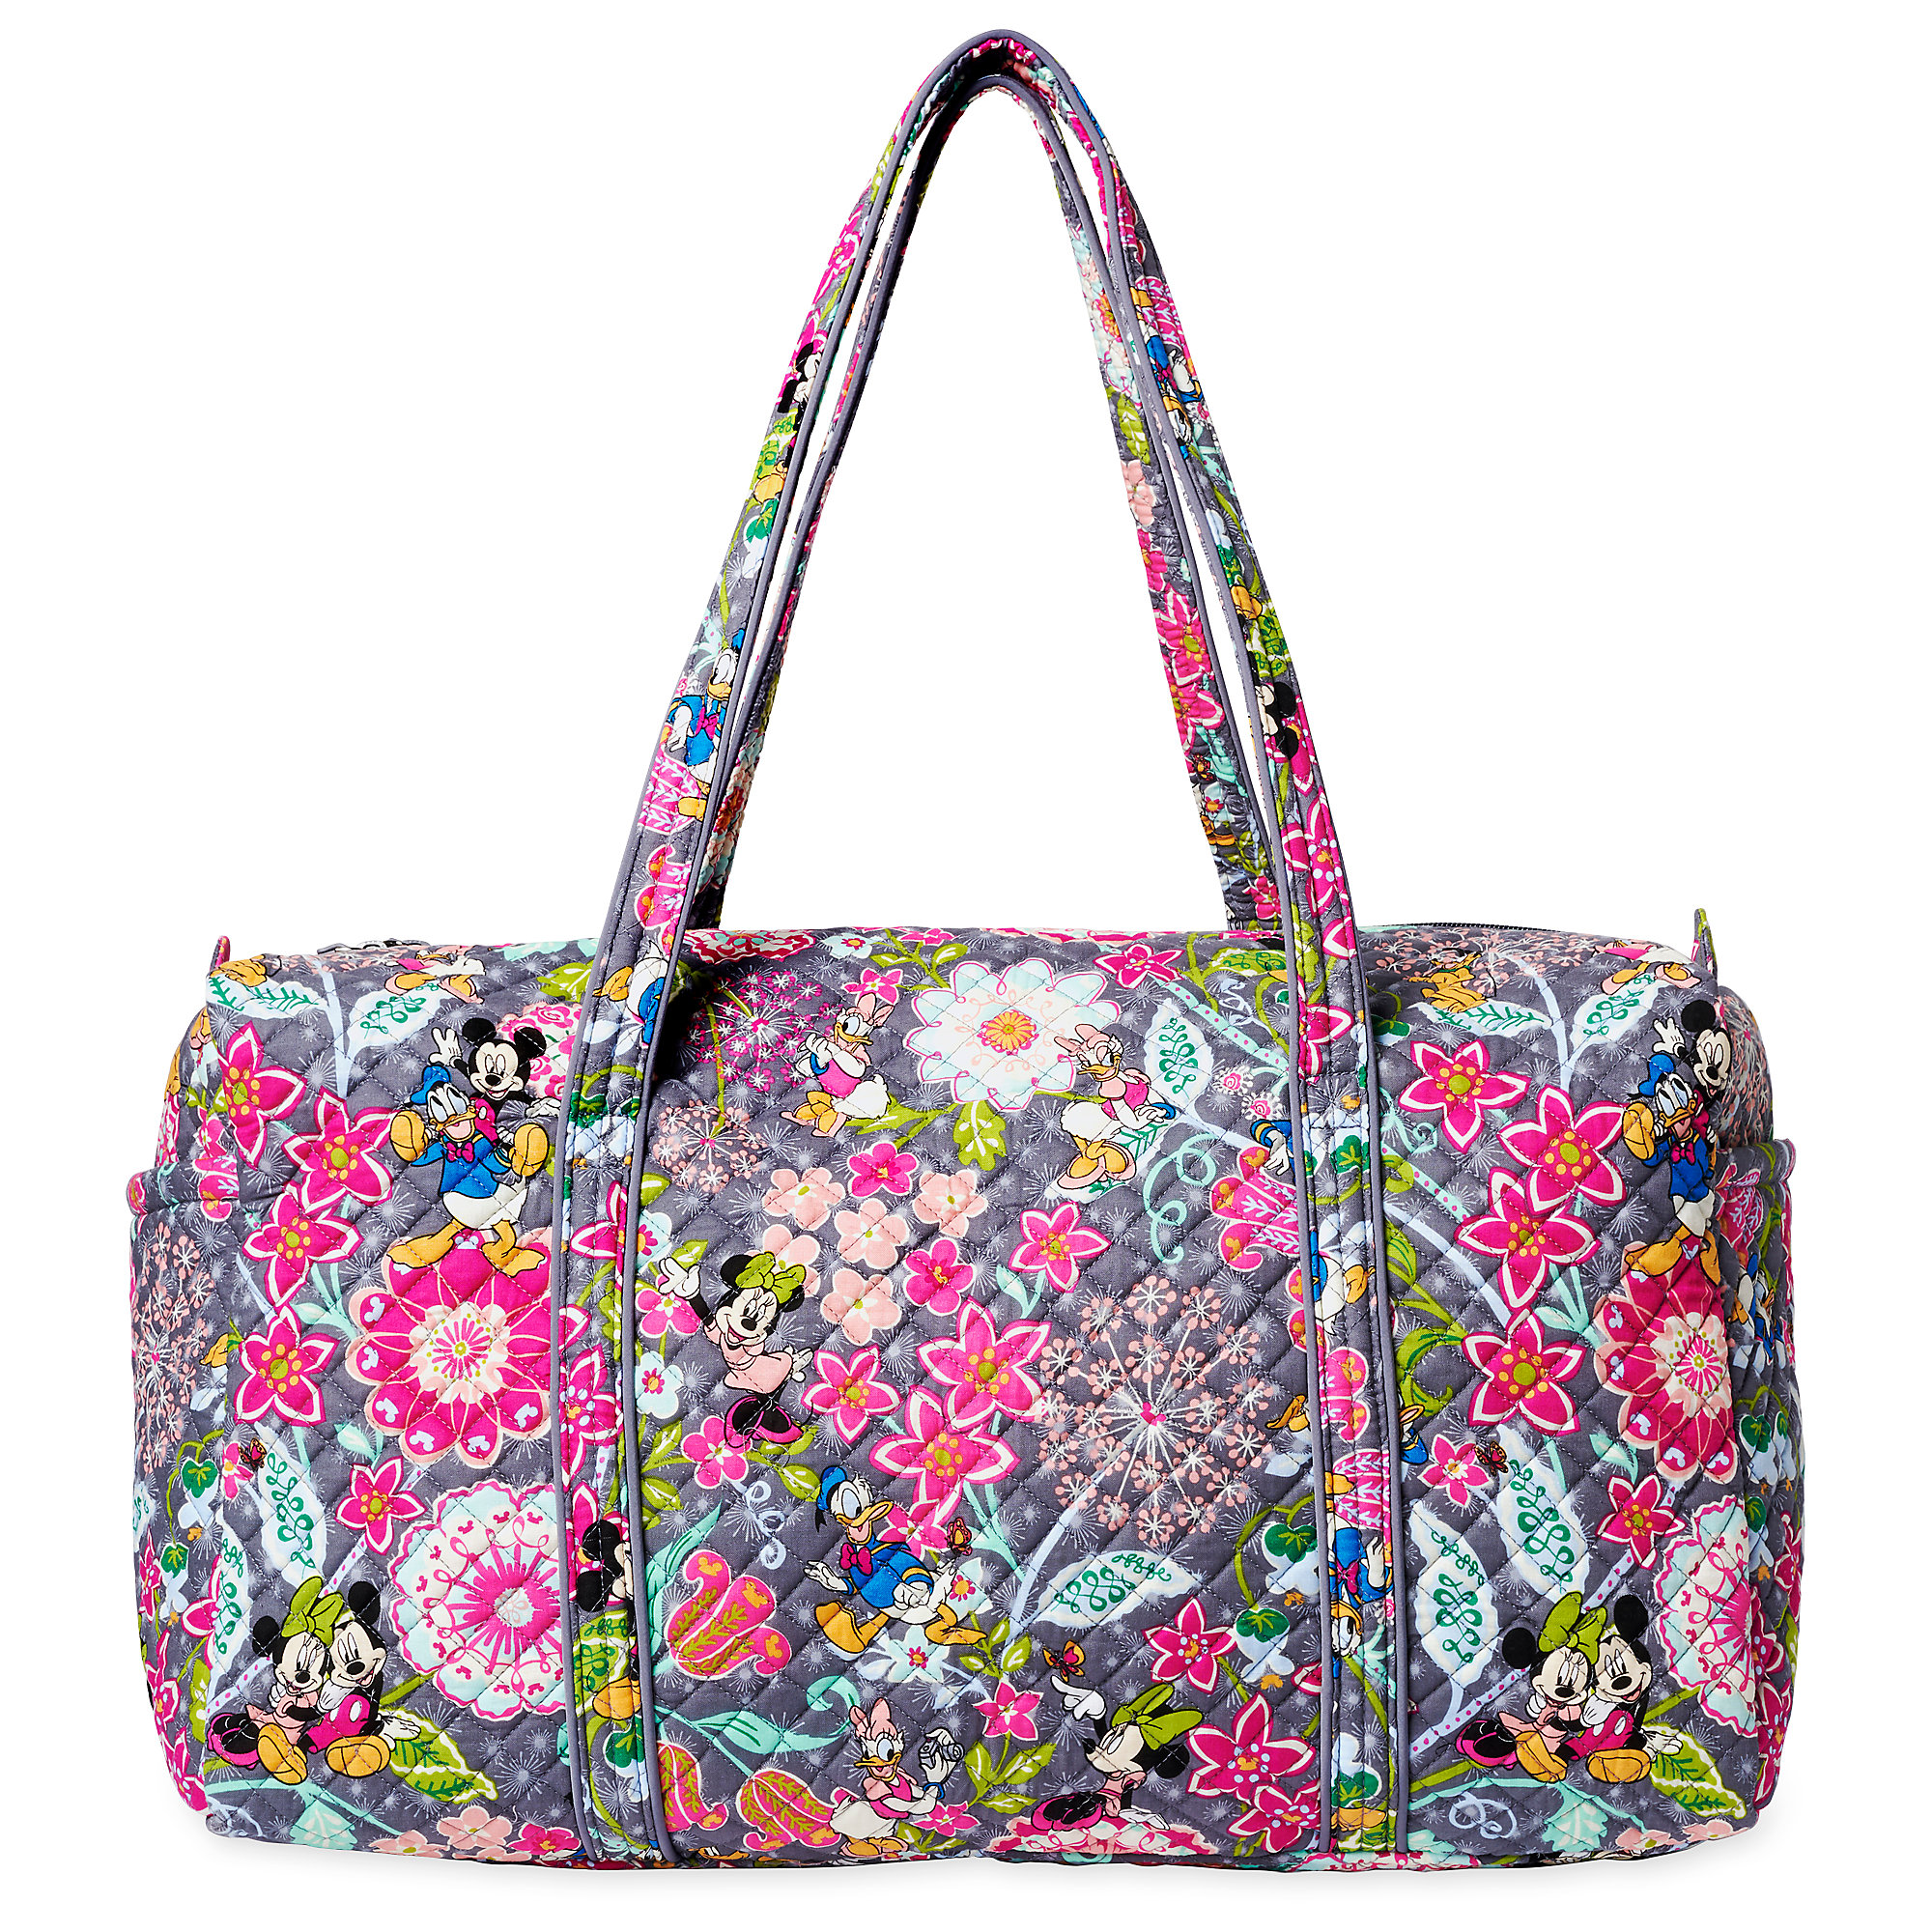 Mickey Mouse and Friends Duffel Bag by Vera Bradley